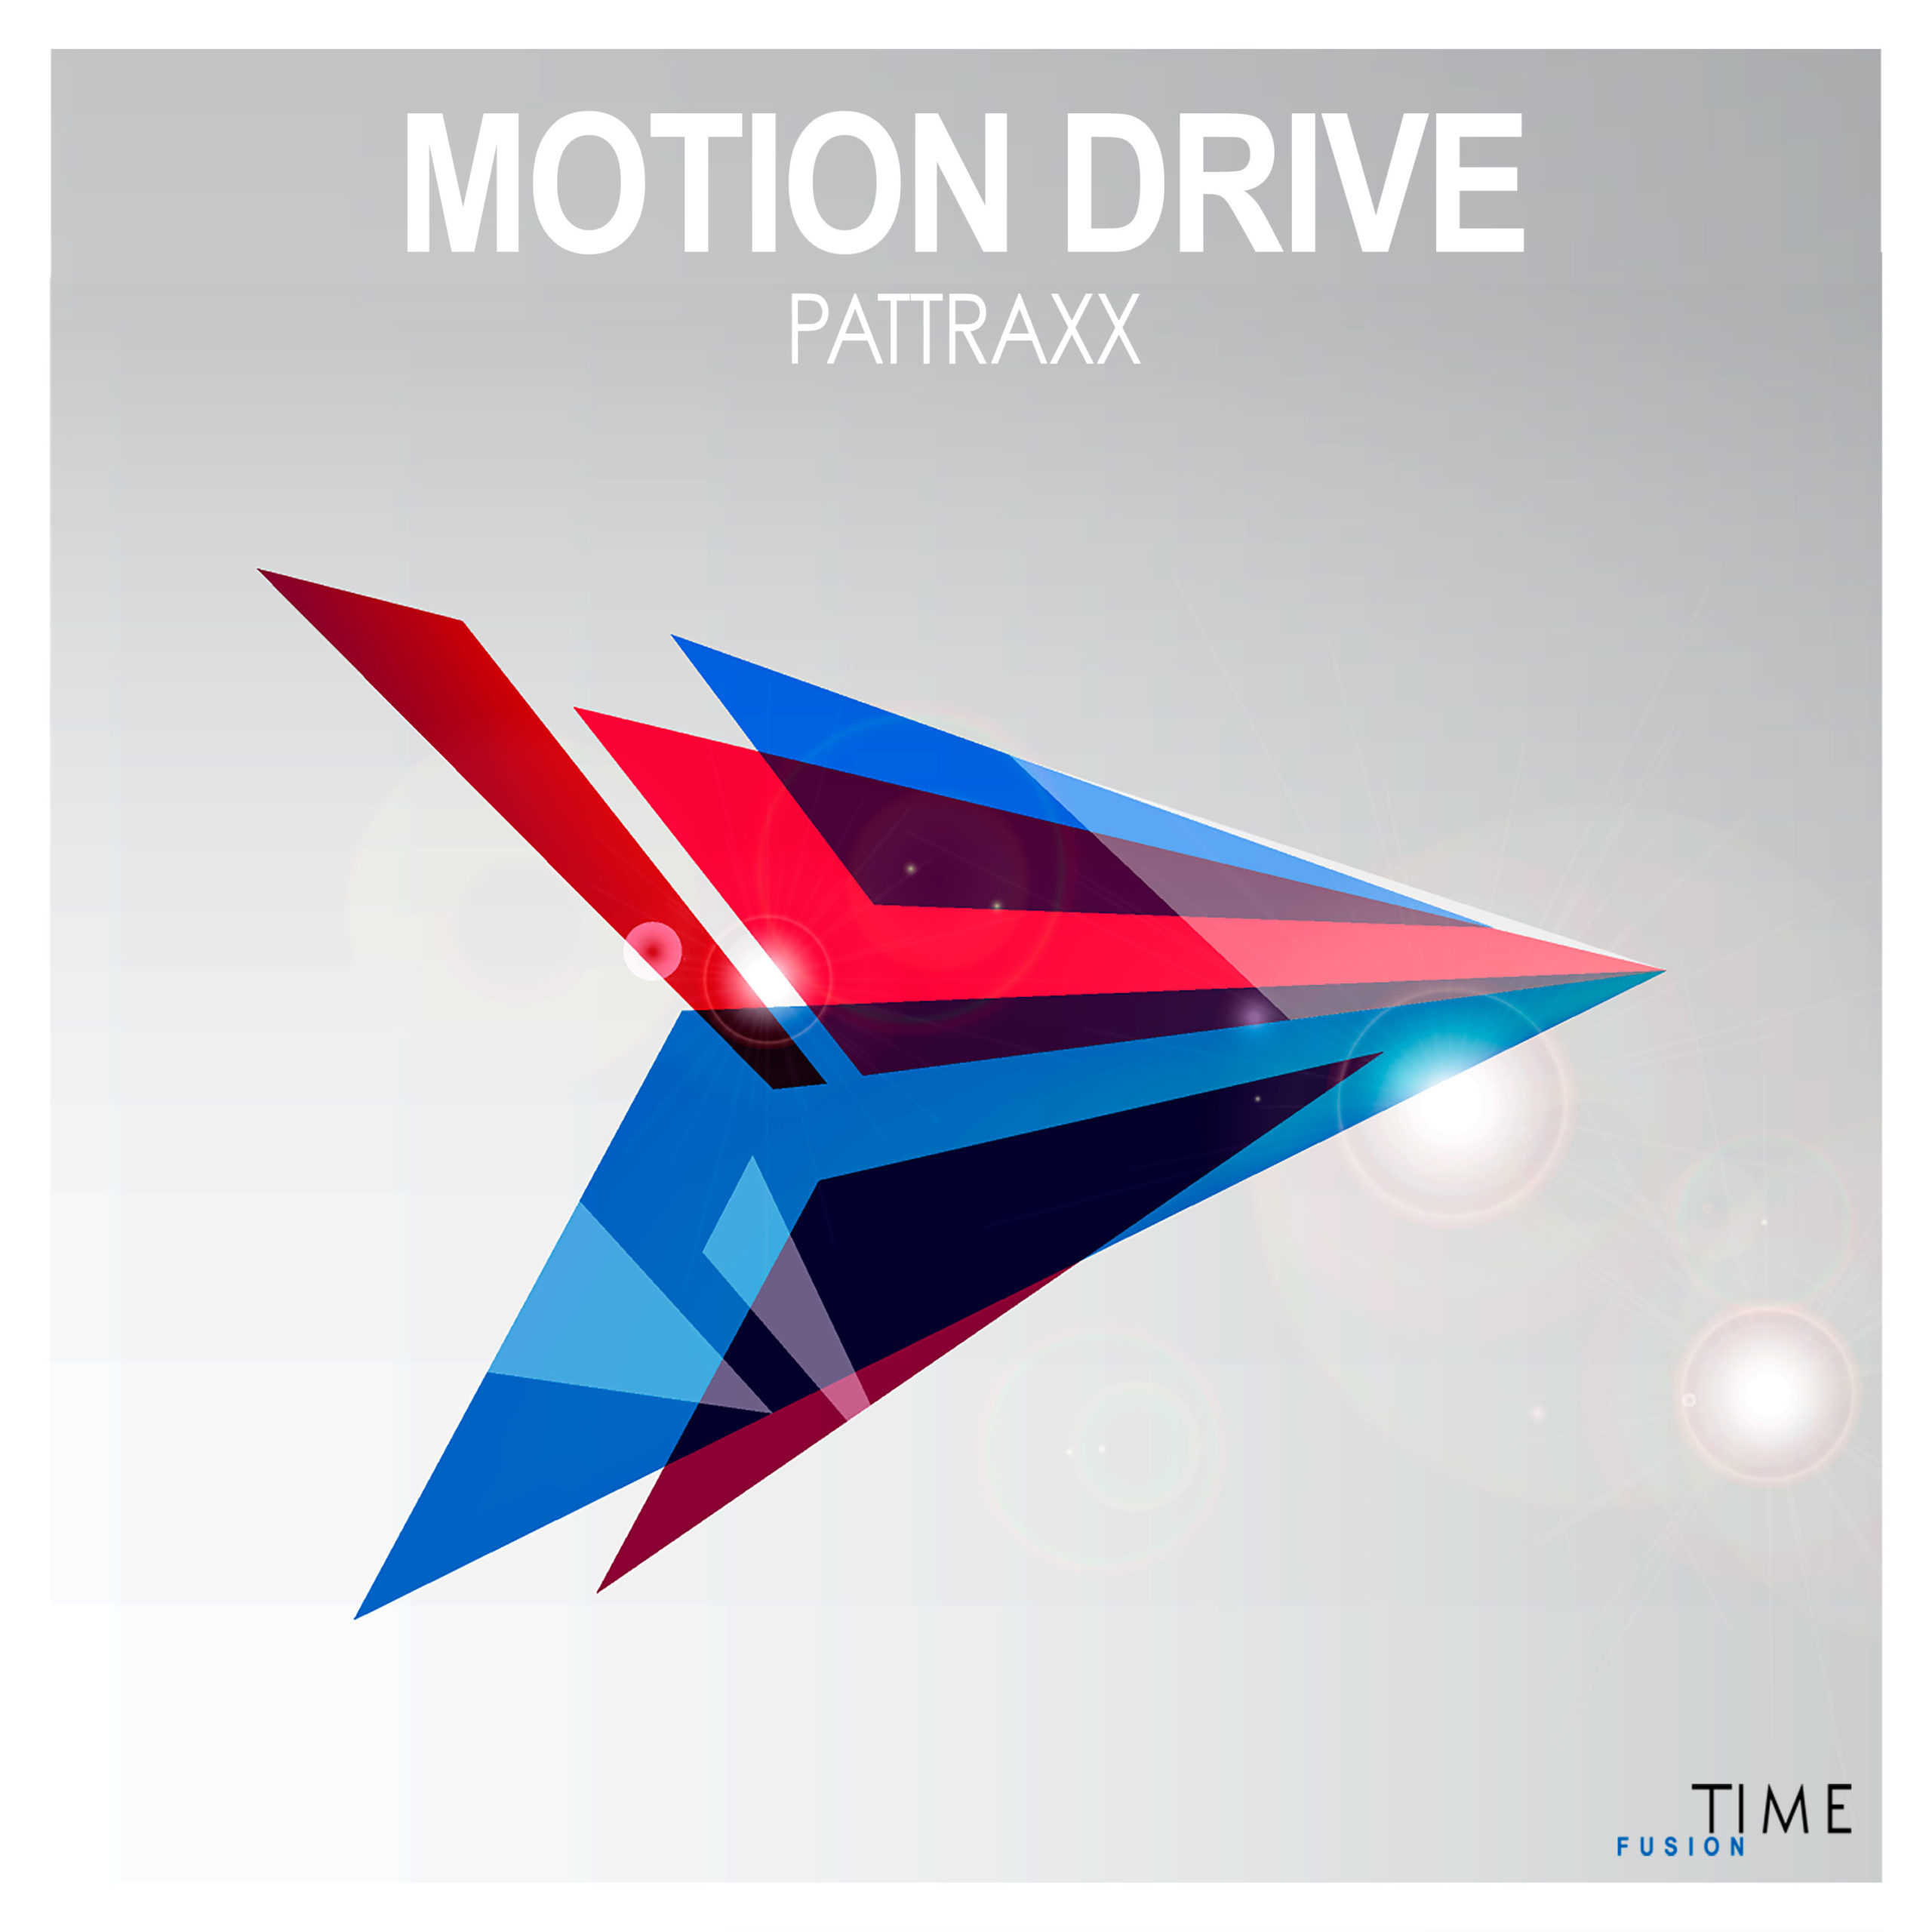 https://www.ultimate-house-records.com/wp-content/uploads/2021/07/tf146-Motion_Drive-Cover_3000px_web-scaled.jpg